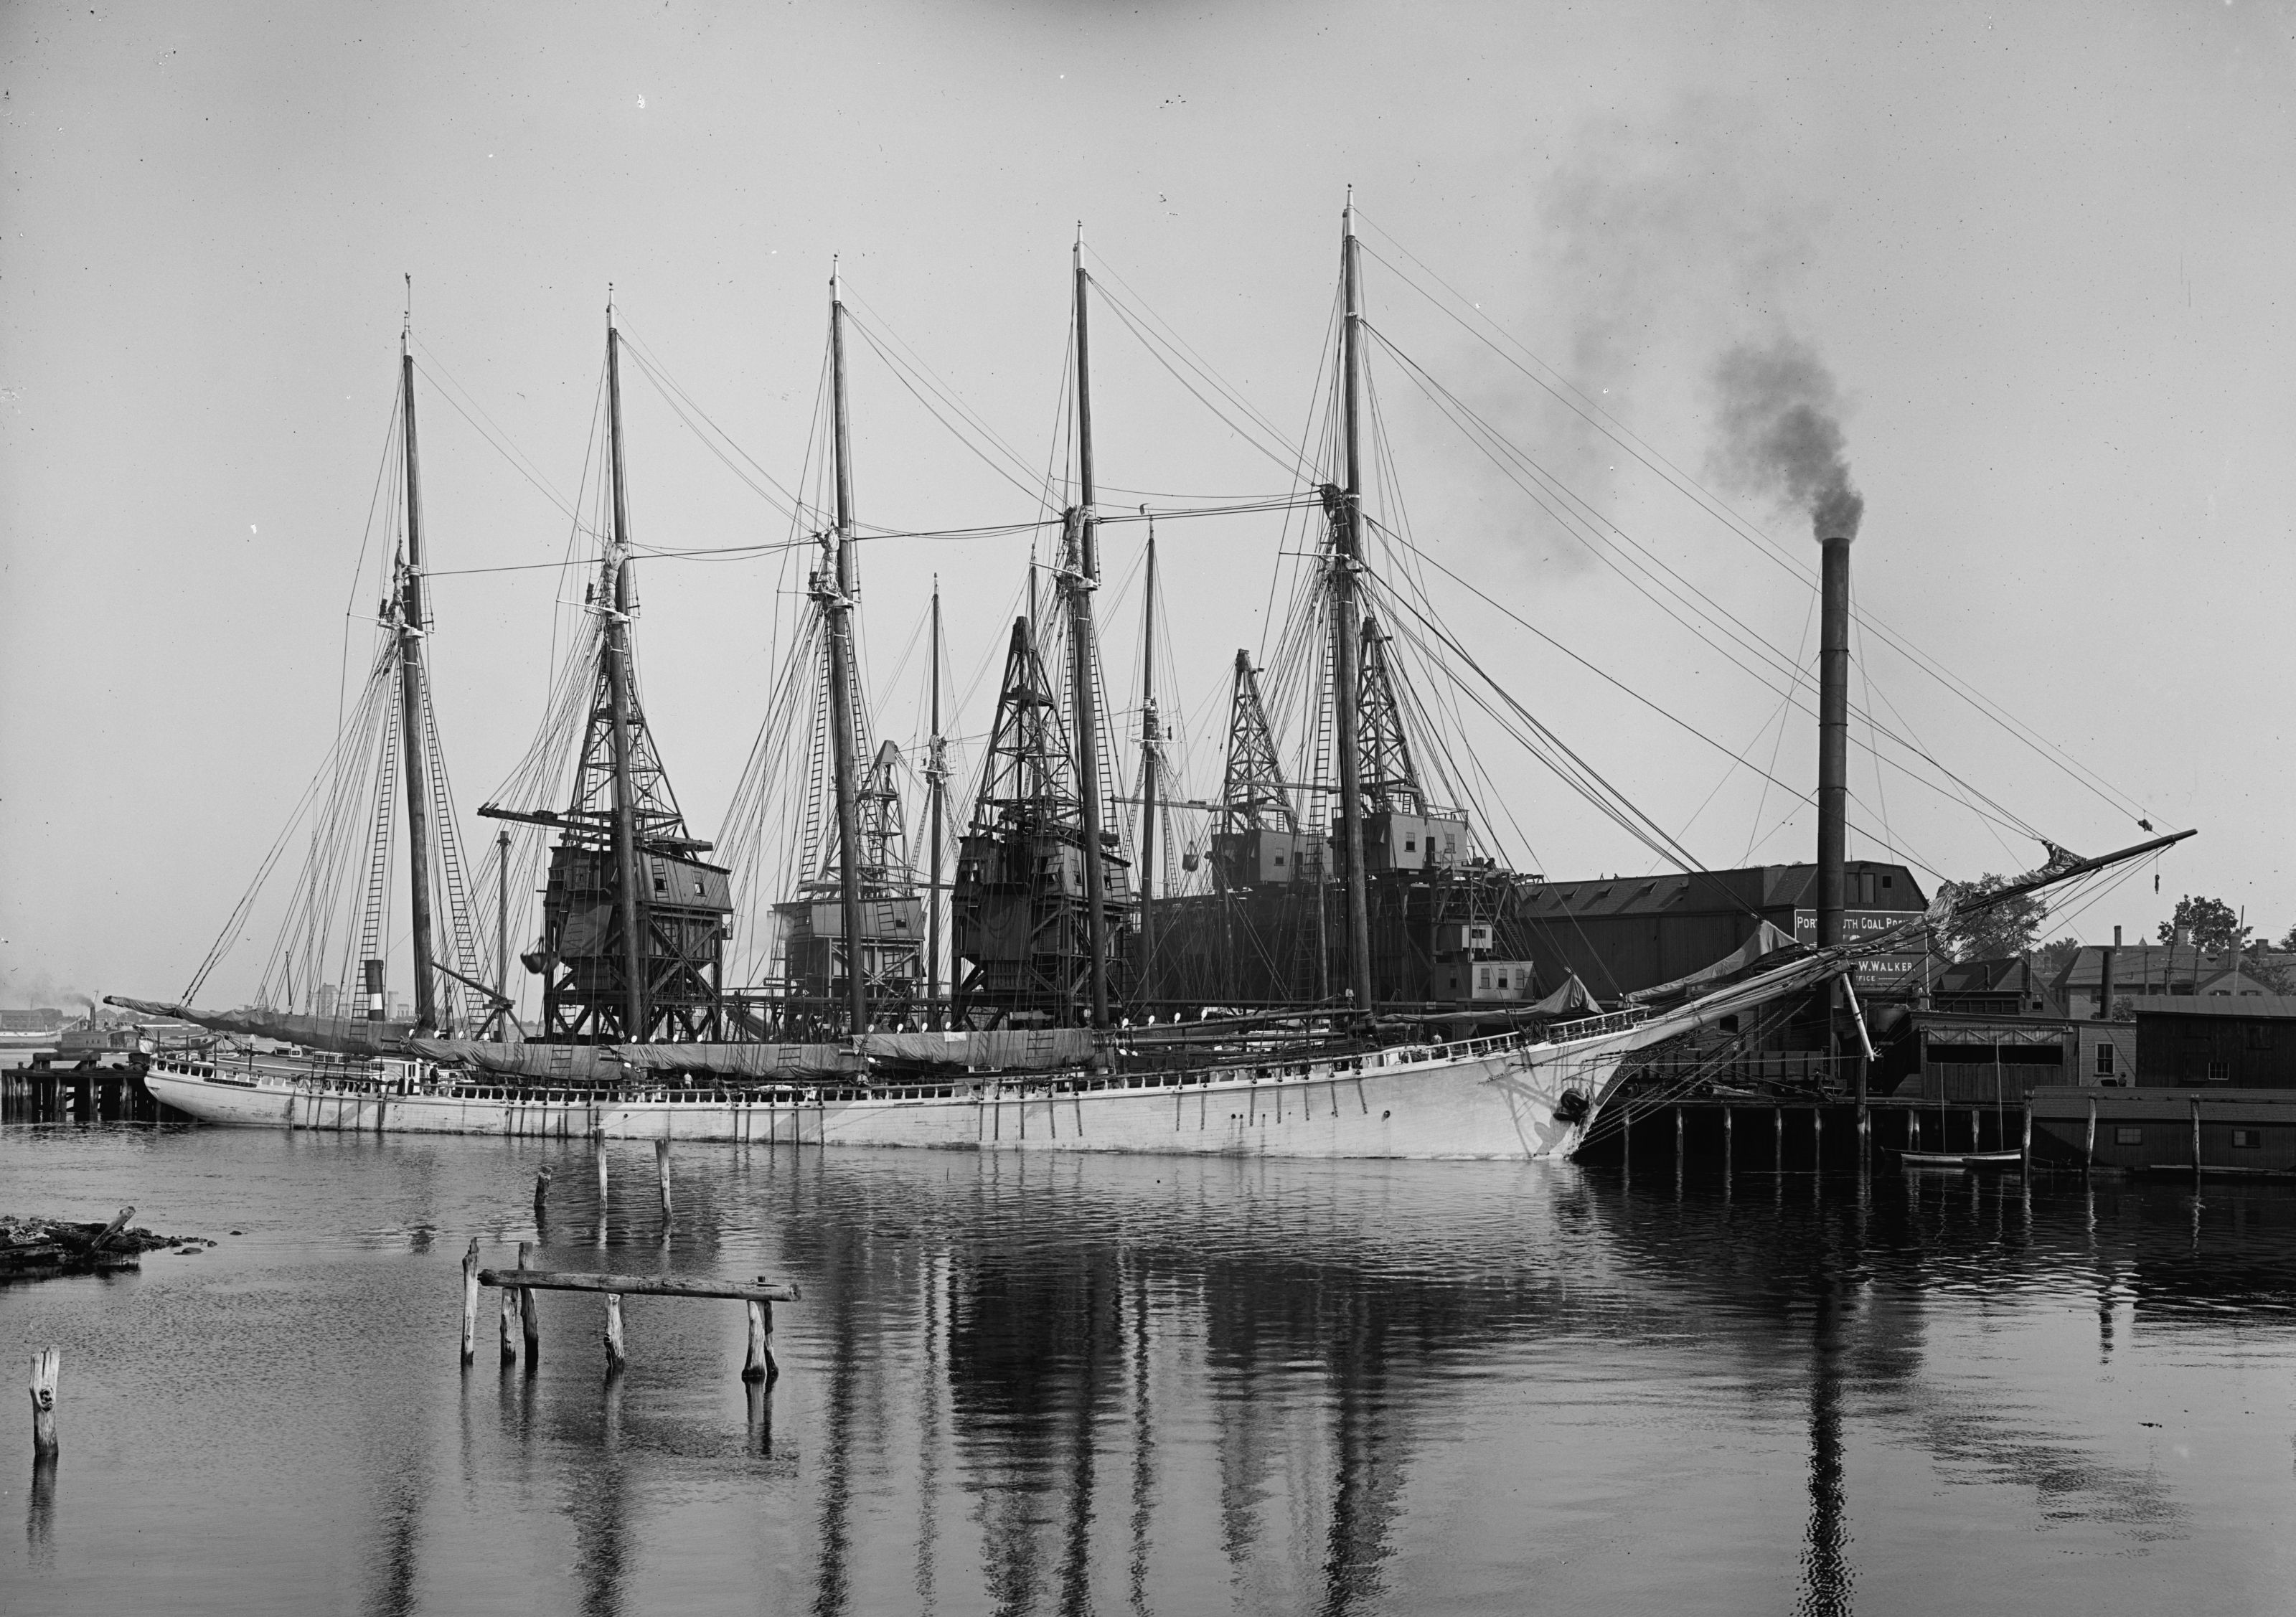 Changing times. Unloading coal from schooner Paul Palmer Portsmouth NH 1908 [3200x2254]